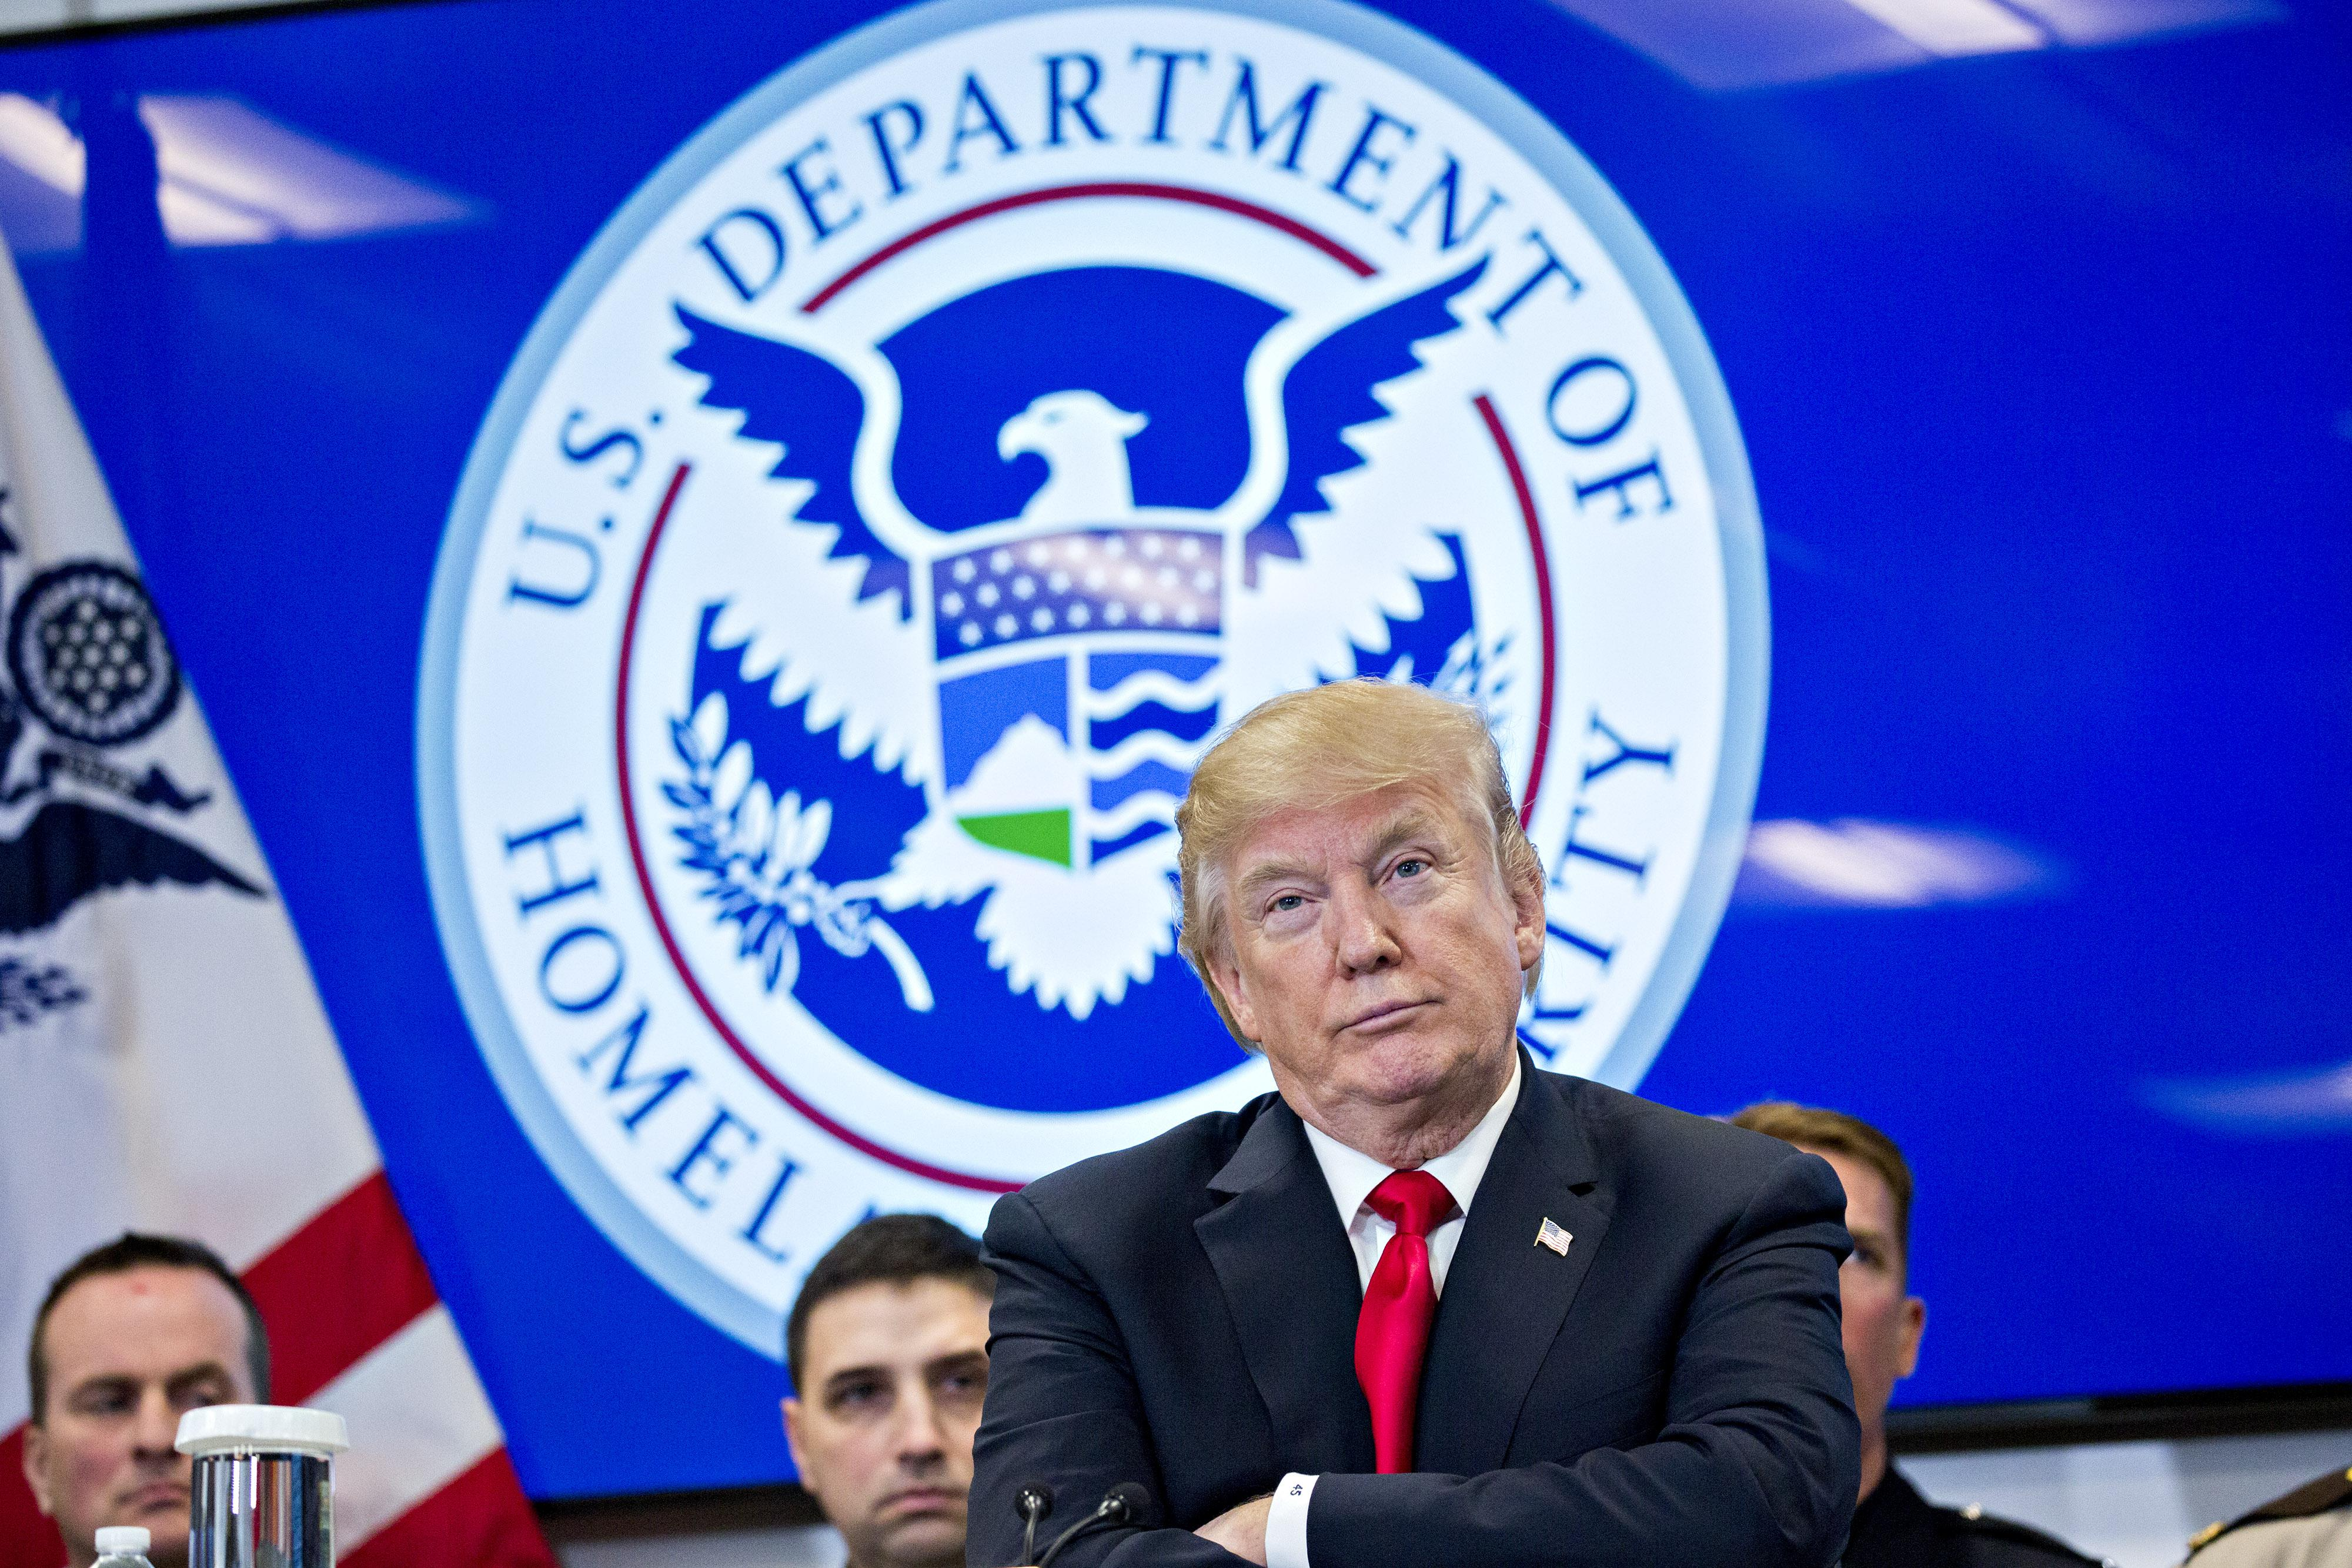 President Donald Trump listens while participating in a Customs and Border Protection (CBP) roundtable discussion after touring the CBP National Targeting Center February 2, 2018 in Sterling, Virginia. Trump is looking to ratchet up pressure on lawmakers to consider the immigration proposal he unveiled in Tuesday's State of the Union using the visit as an opportunity to again argue his proposal would bolster the country's borders.